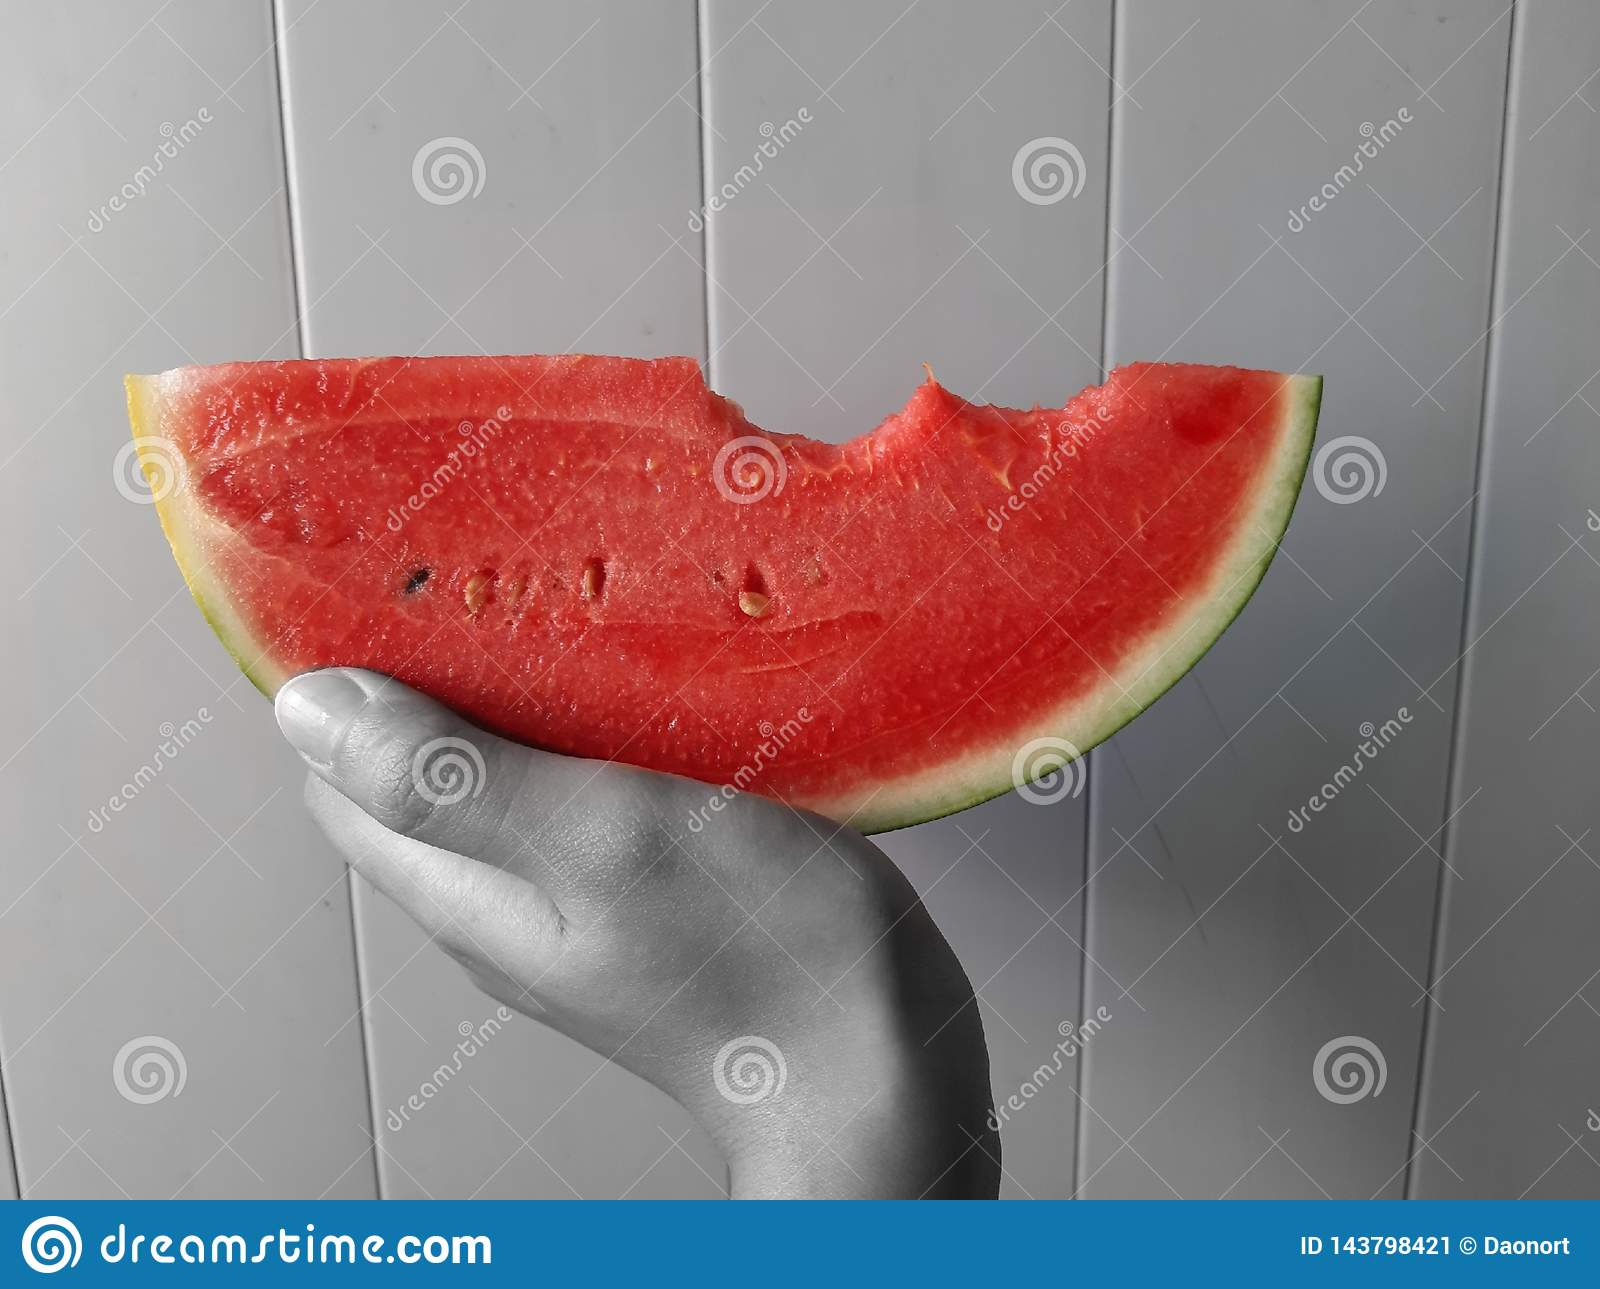 Art Red Watermelon